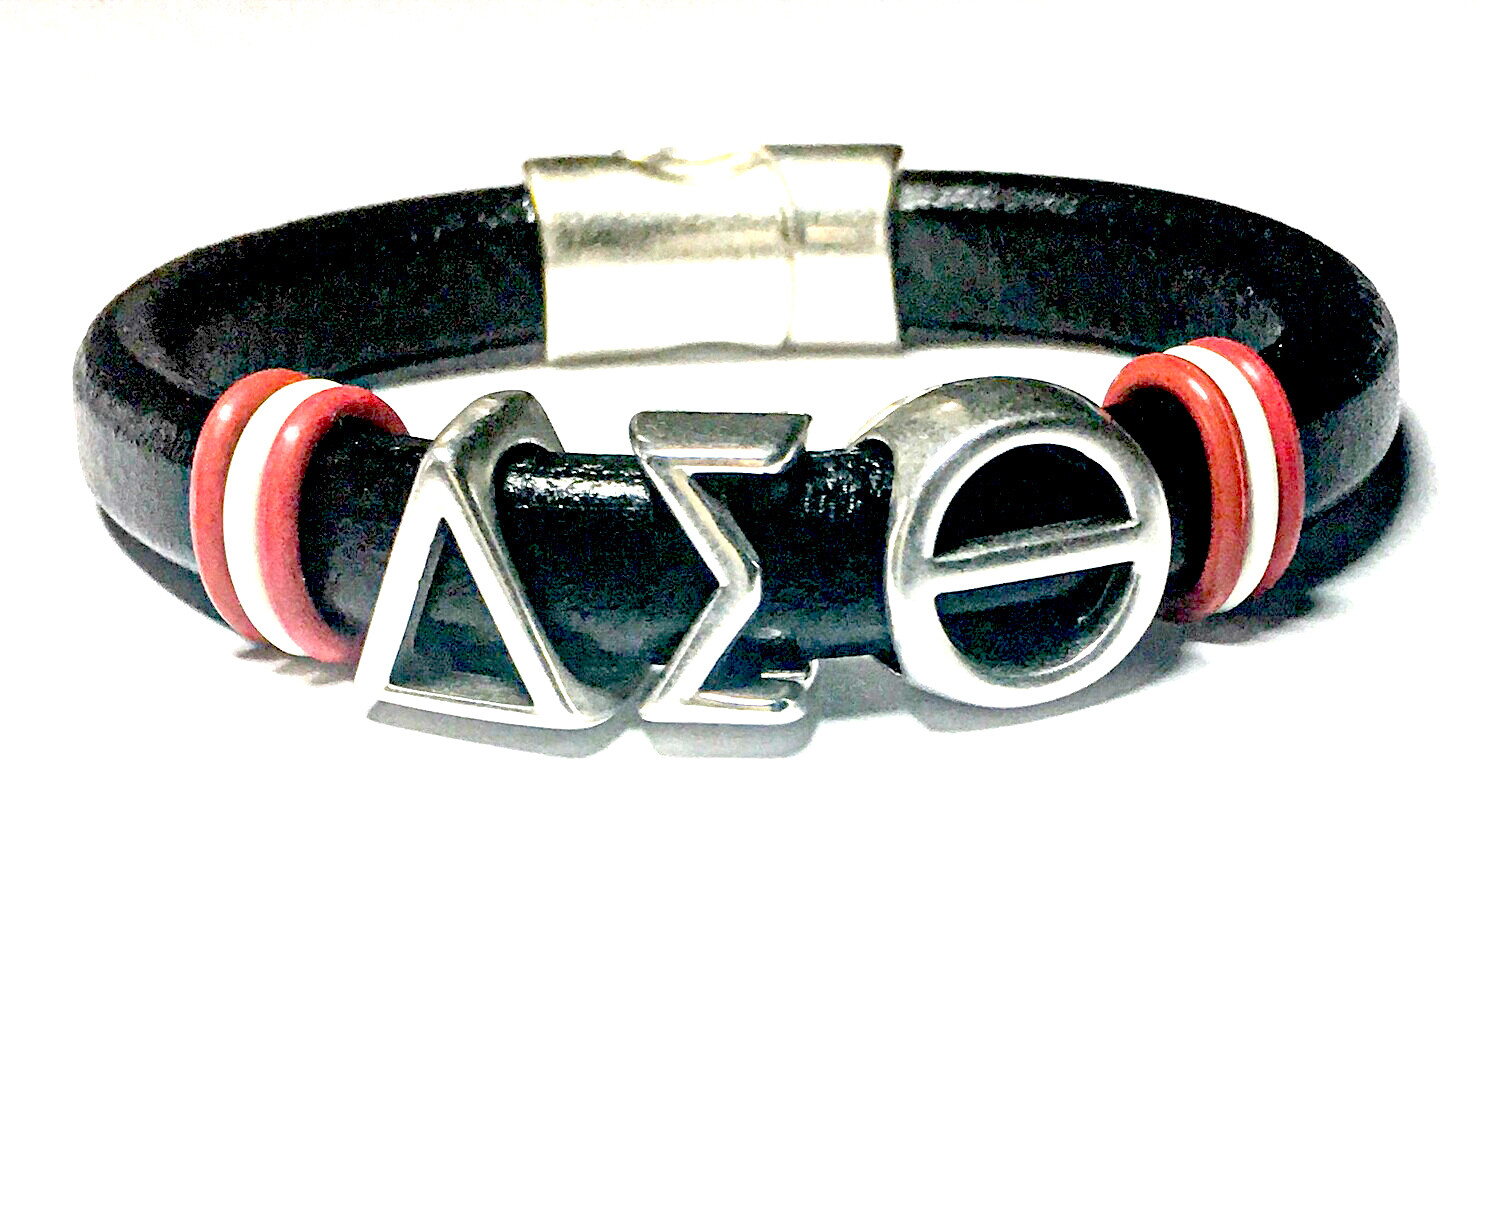 Bracelet | Black Leather Delta Sigma Theta With Red And With Rings Classy Creations Originals